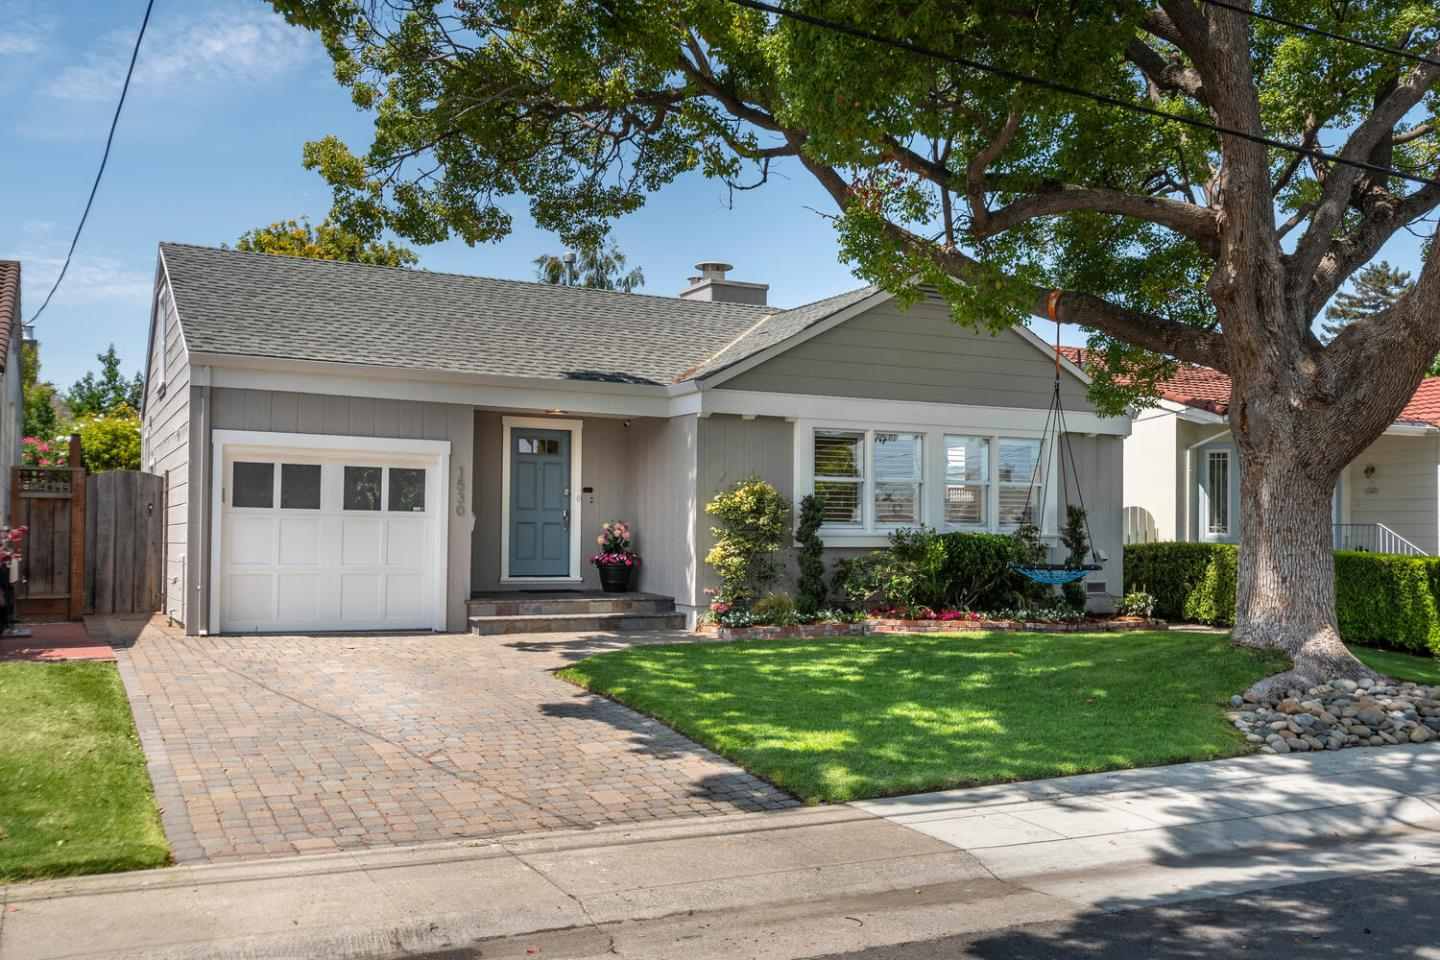 Open SA and SU 2-4!  Don't miss this one!!  Adorable, bright, light, and superbly located,  this home has it all. Fresh paint inside and out, gorgeous wood floors, and a recently updated kitchen with designer style. Formal living and dining rooms are perfect for entertaining with friends and family; the kitchen is a chefs dream with stainless appliances, newer shaker style cabinetry, center island, and separate eat-in area.  An upstairs bonus room is ideal for play or guests. A detached studio is perfect for todays work-from-home needs. New lighting is found throughout, including in both bedrooms, one of which has access to a large,updated bathroom and there is a generous half-bath with integrated laundry. Outdoors has plenty of room for play and entertaining with a paver stone patio and large grassy area. Access to acclaimed Baywood Area Schools.  Close proximity to commute routes; Silicon Valley, SFO, San Francisco, dining, shopping, entertaining.